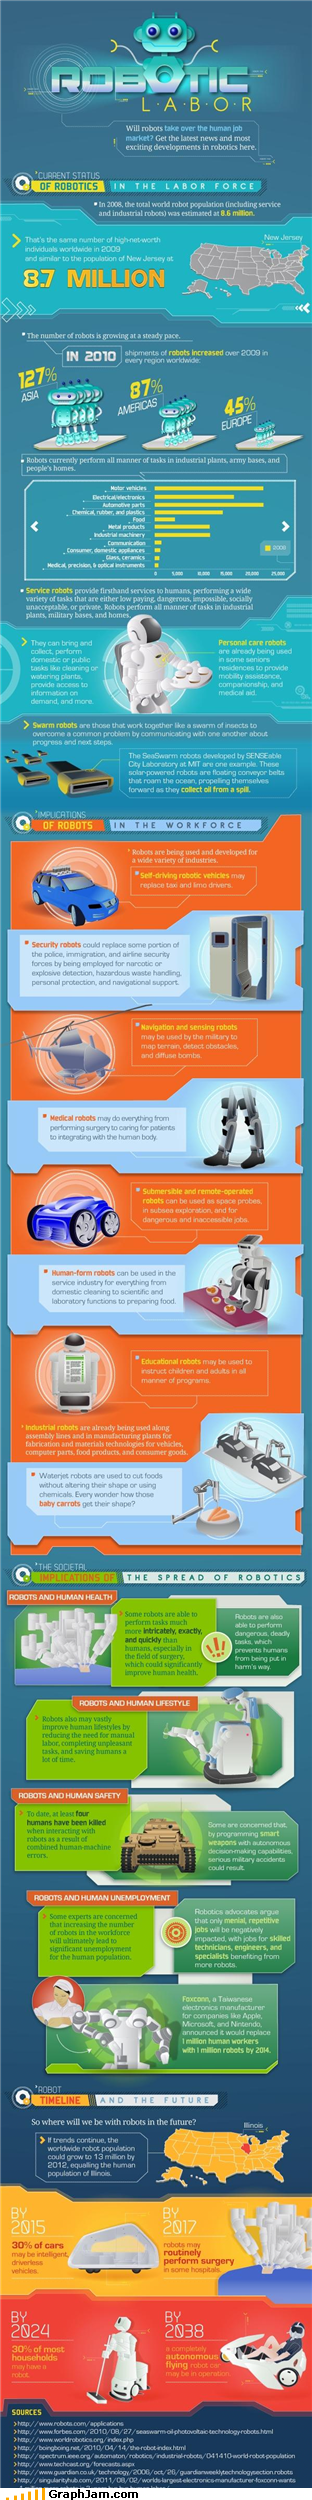 infographic interesting labor robots - 5203748864